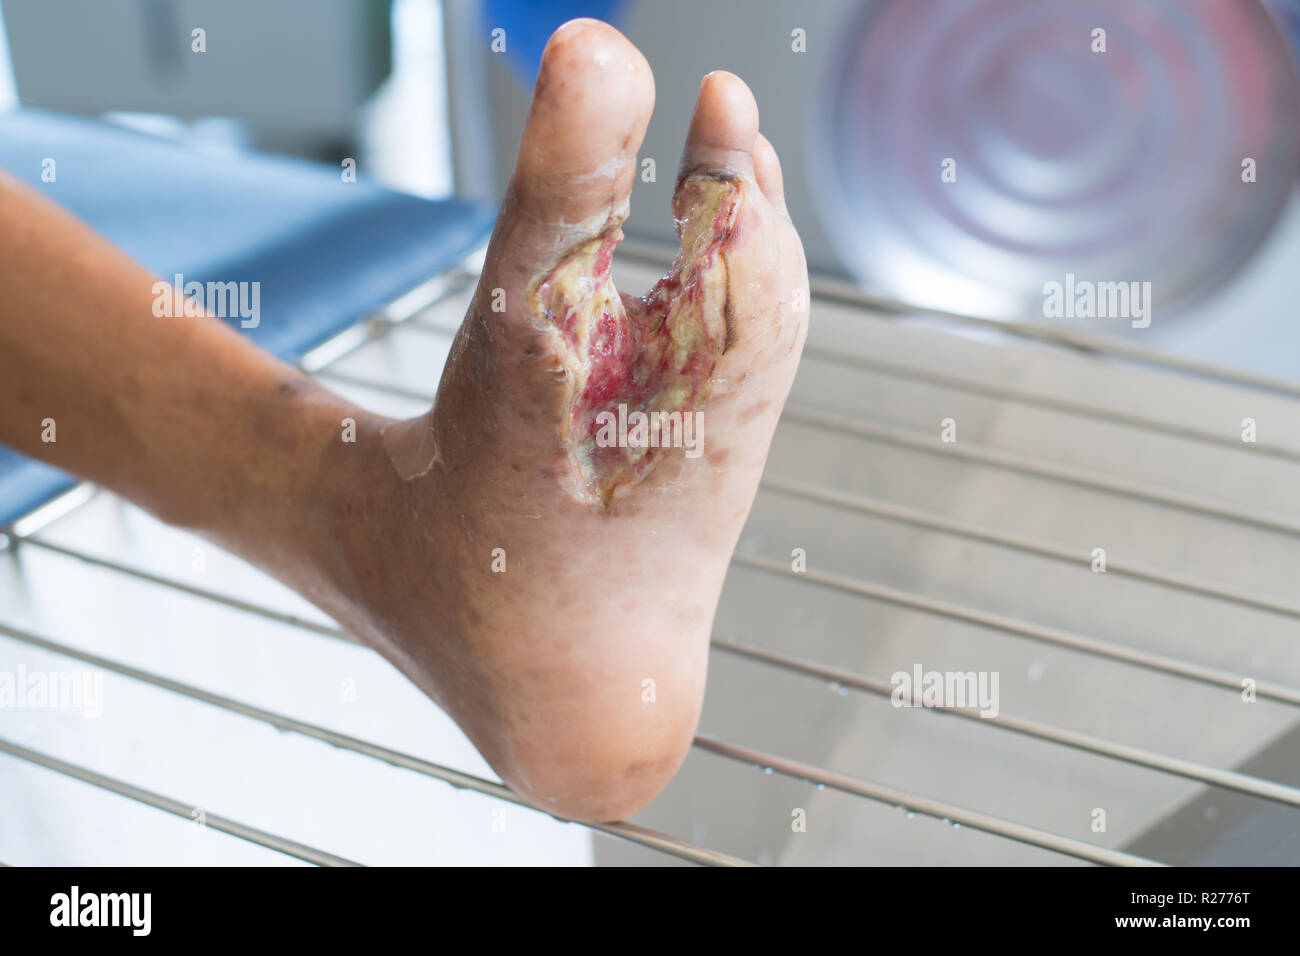 Diabetes Foot Infection Wound Stock Photo Alamy